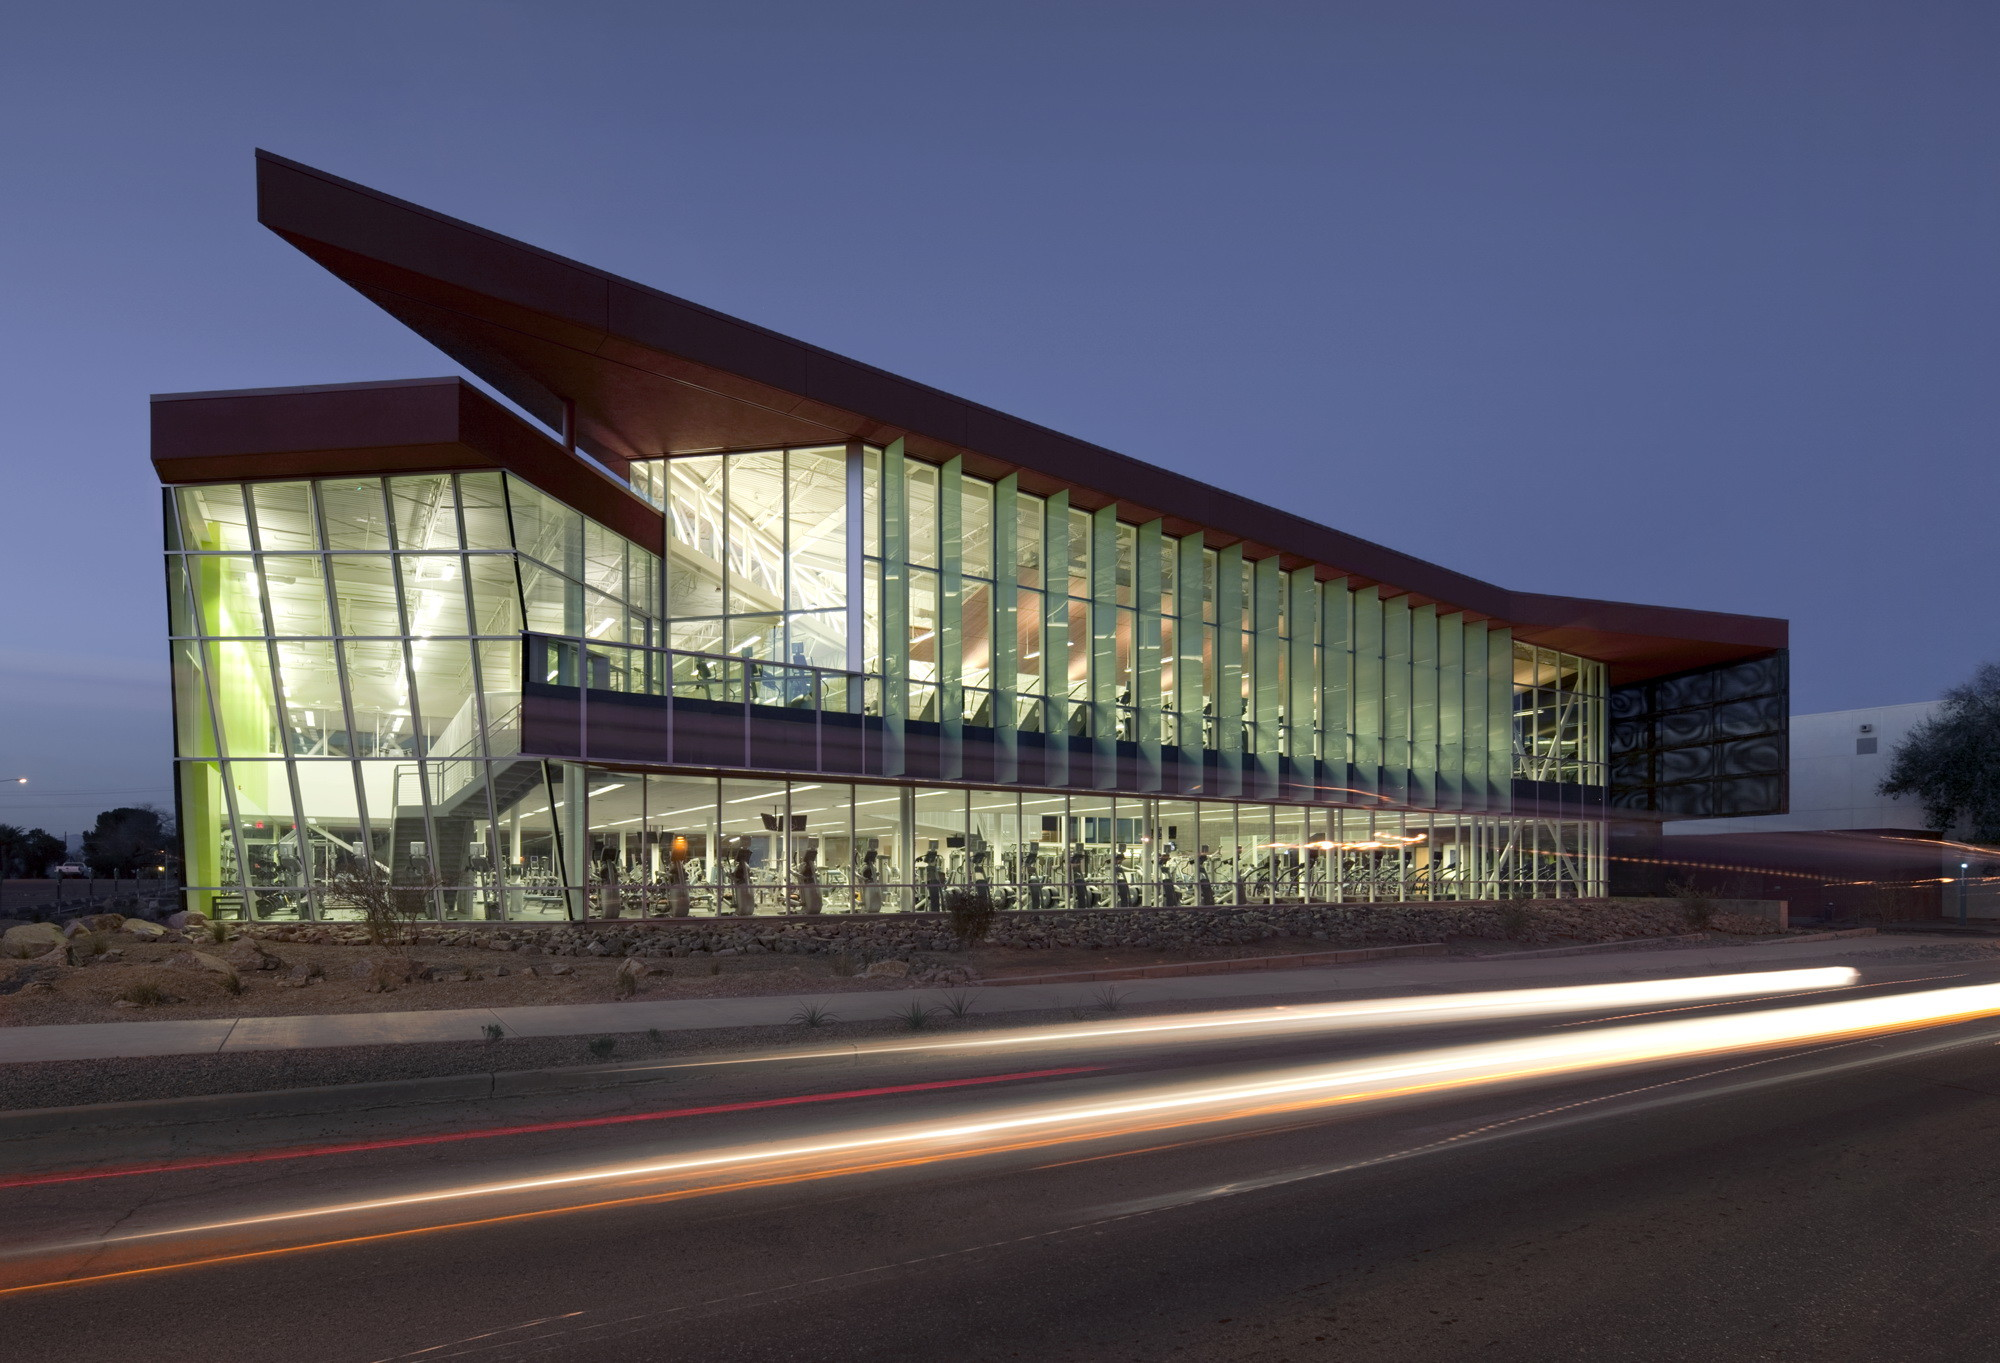 University of Arizona Student Recreation Center Expansion / Sasaki, © Timmerman Photography Inc.